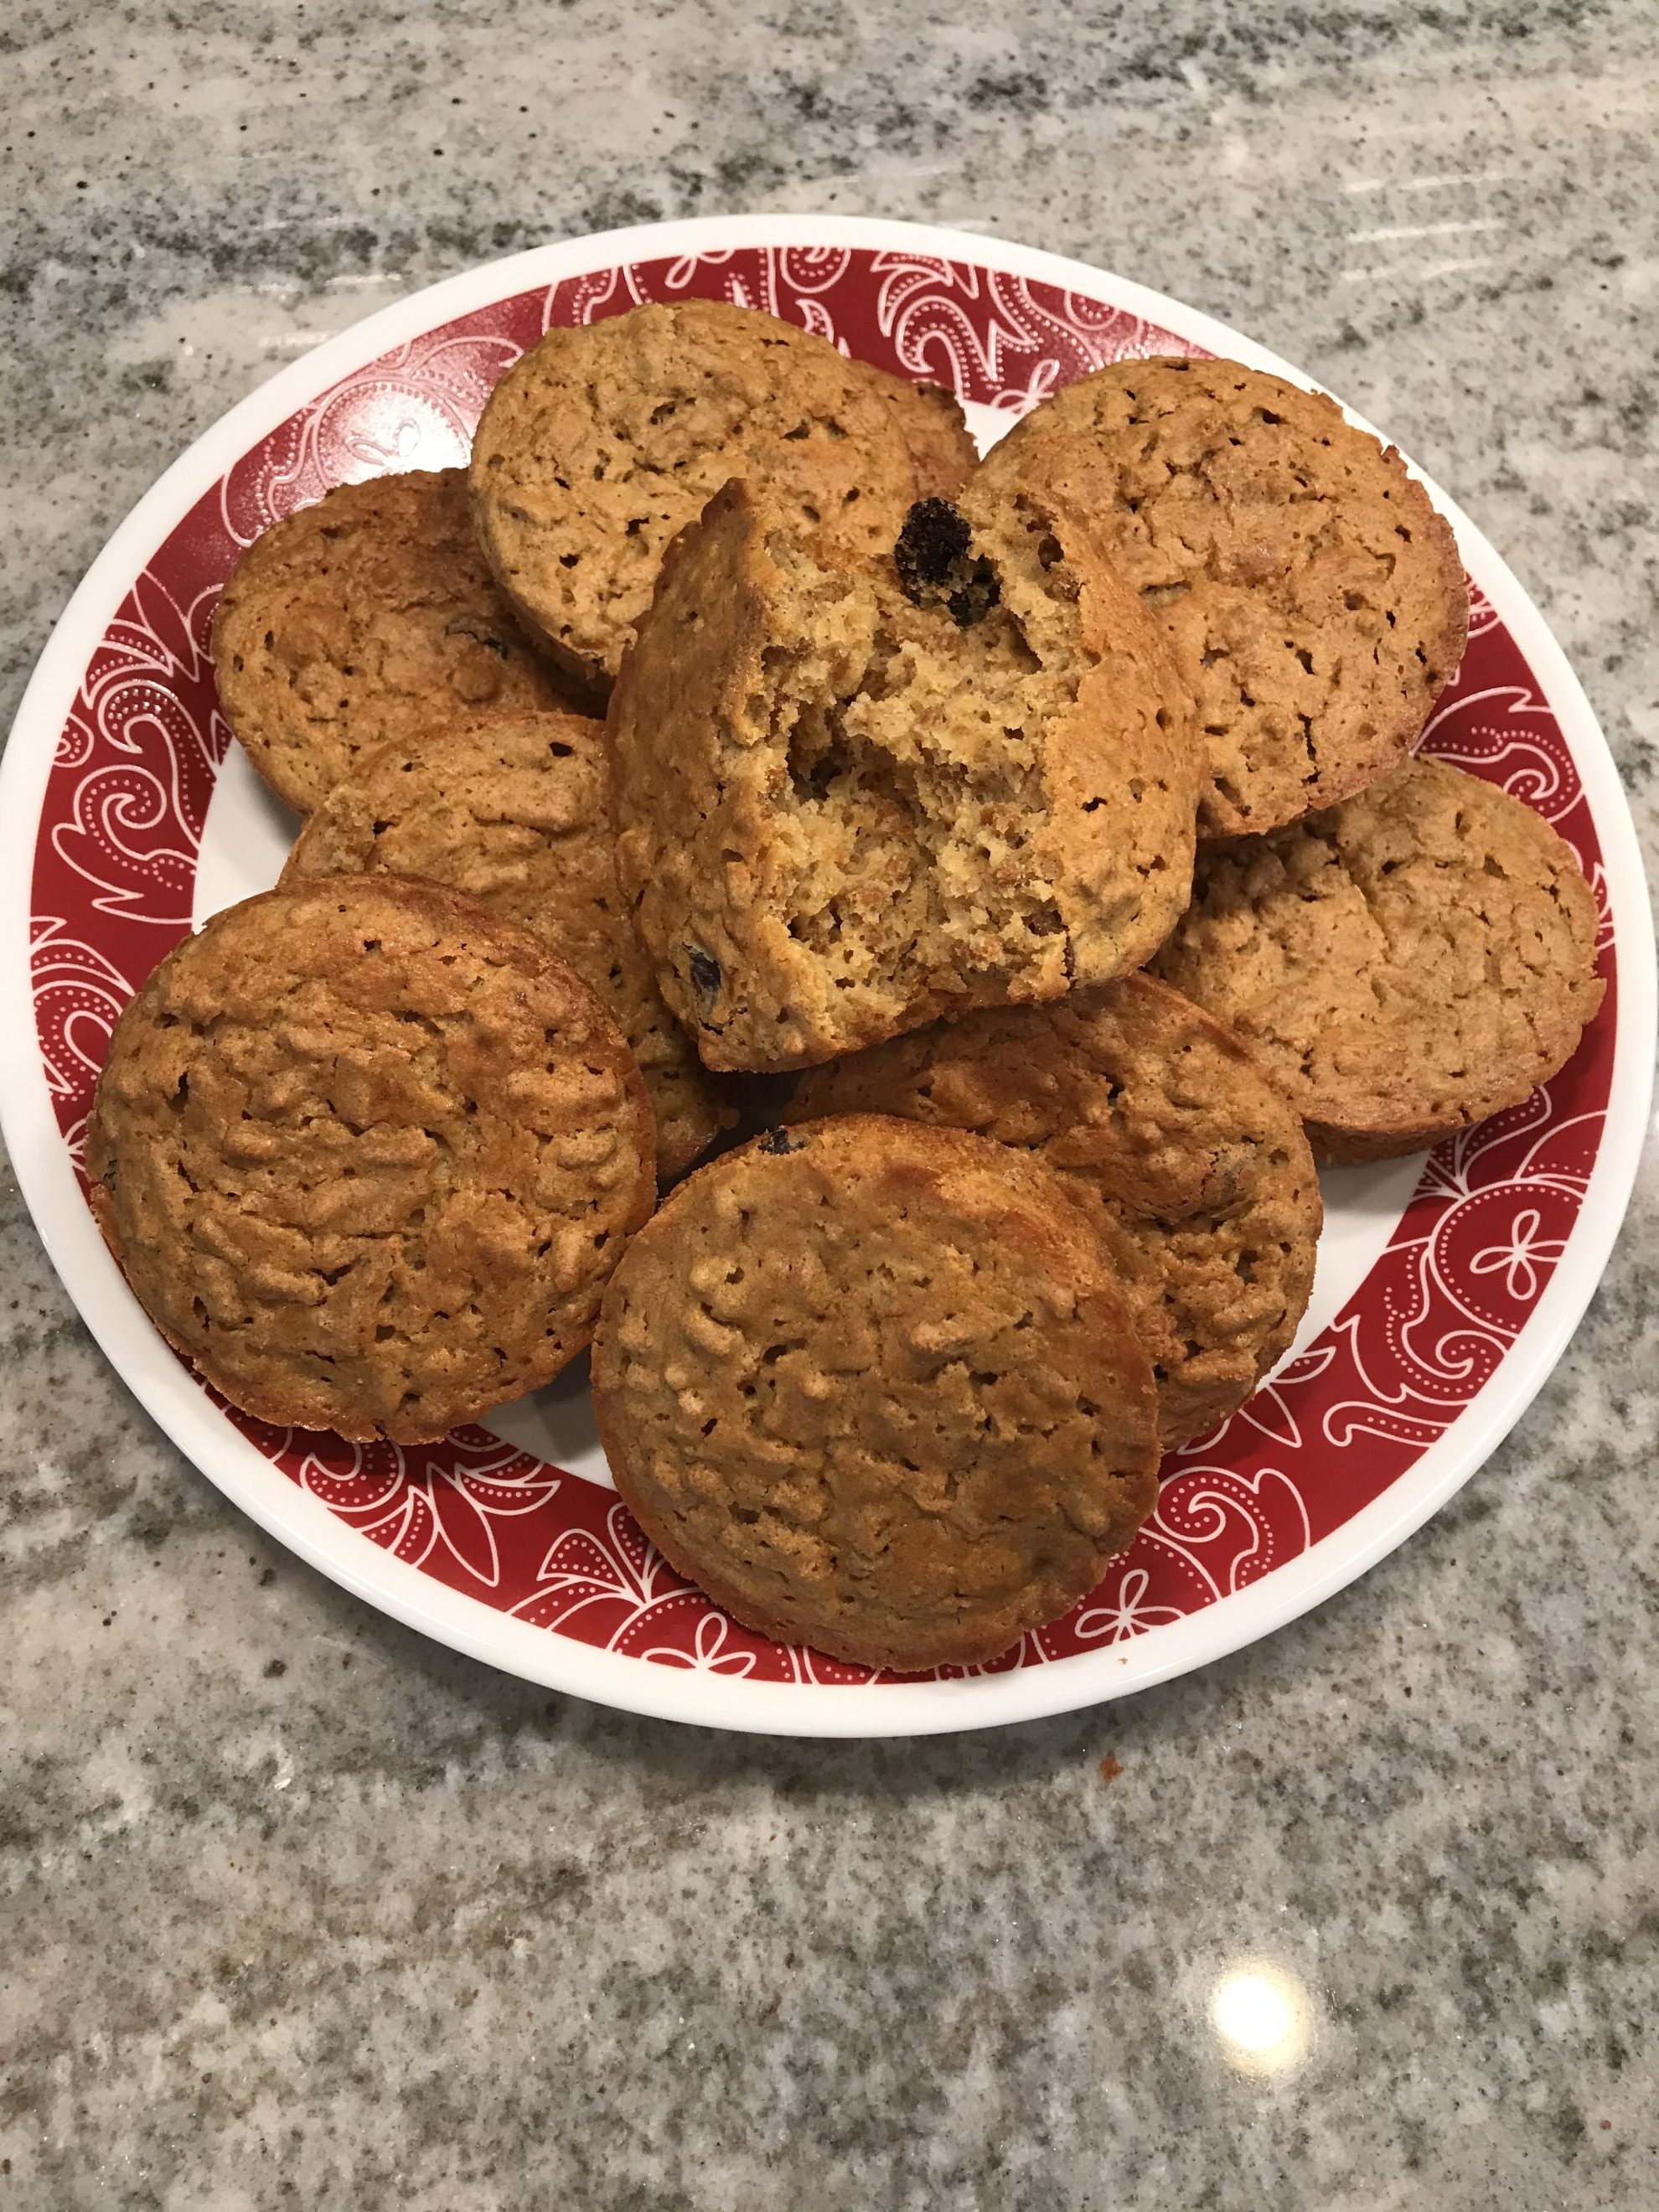 Weight Watchers Fiber One Raisin Bran Muffins are three points per muffin.